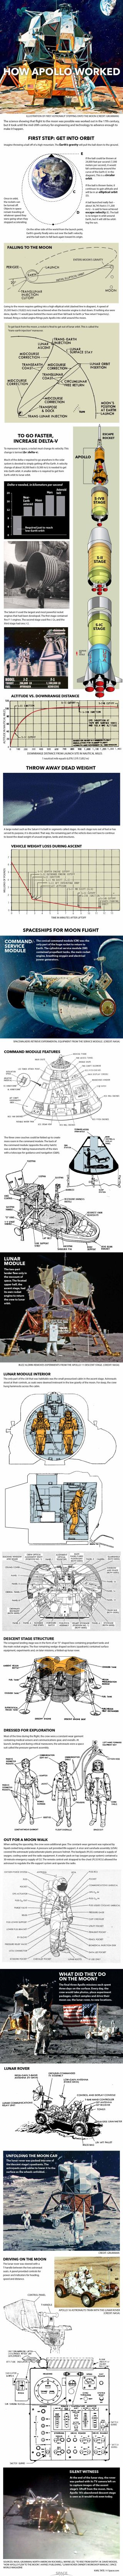 diagrams and nasa artwork show how apollo astronauts flew to the moon